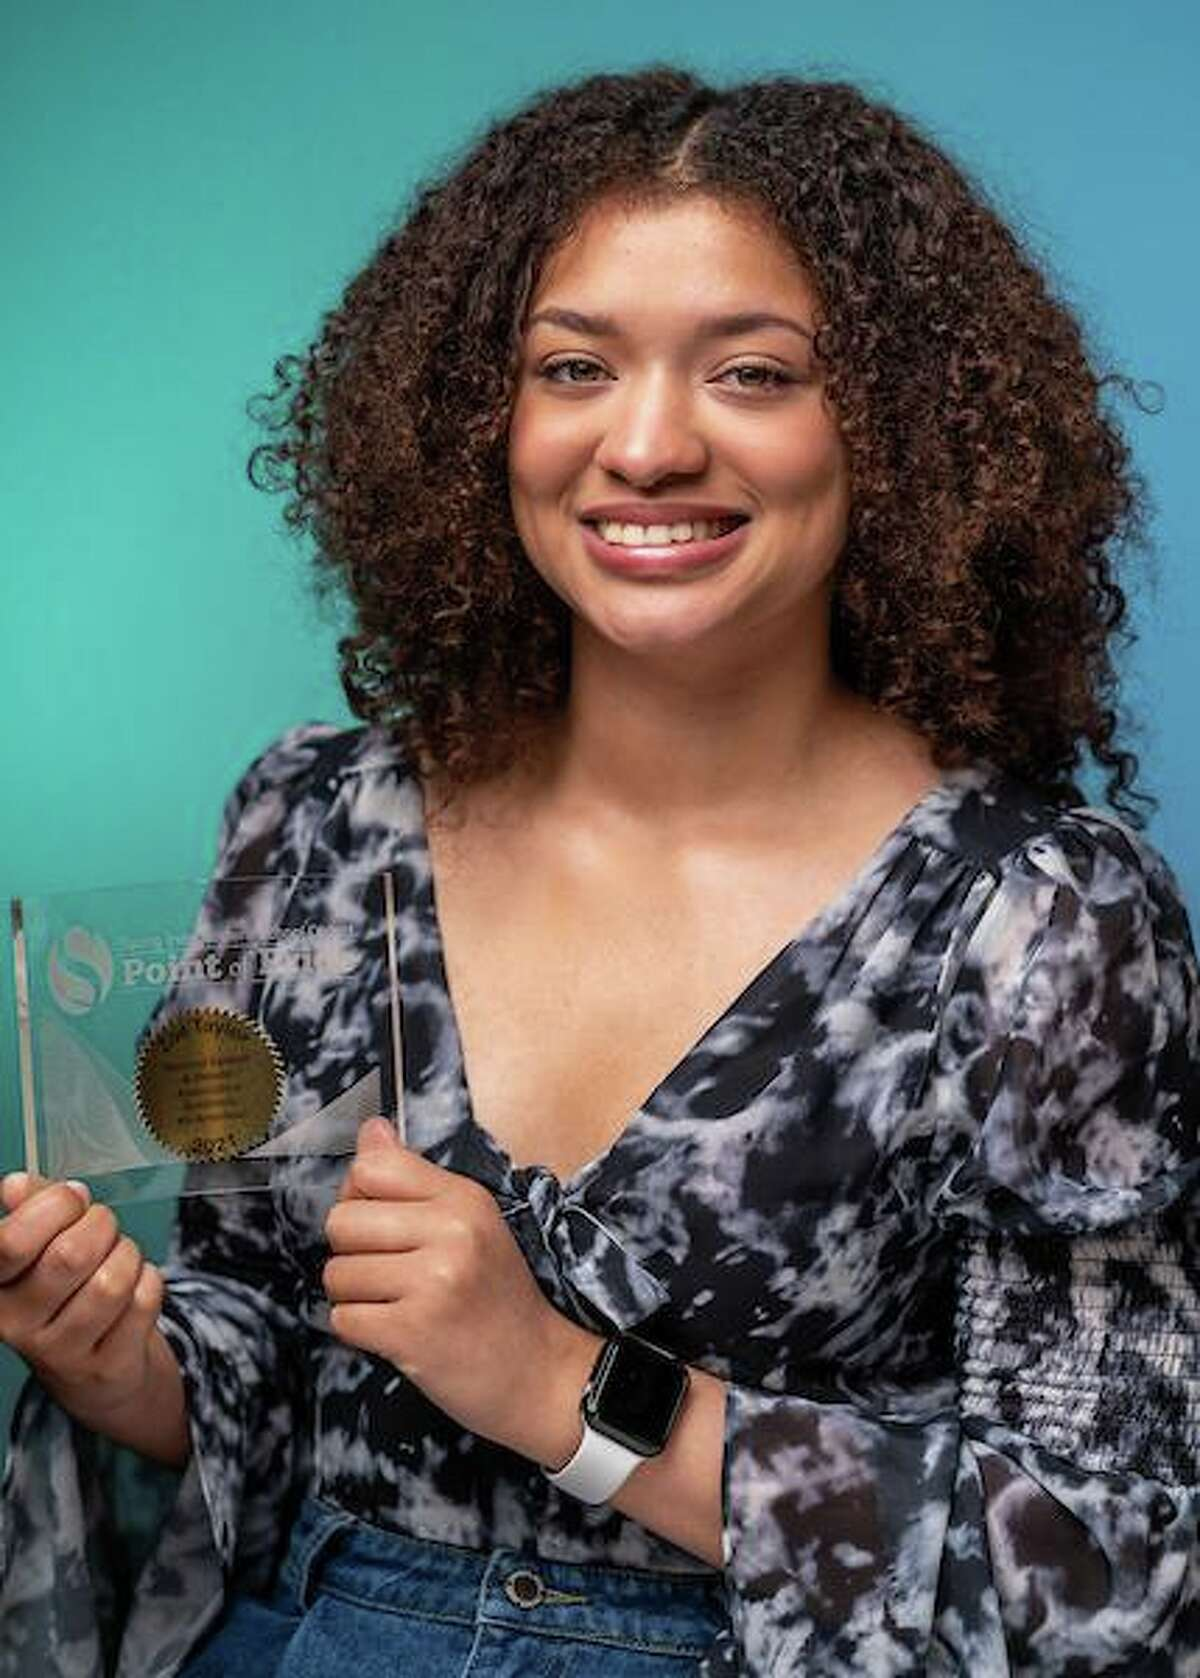 Zoe Taylor, a graduating senior from Spring High School, who was recently named an Academic All-American by the National Speech & Debate Association.